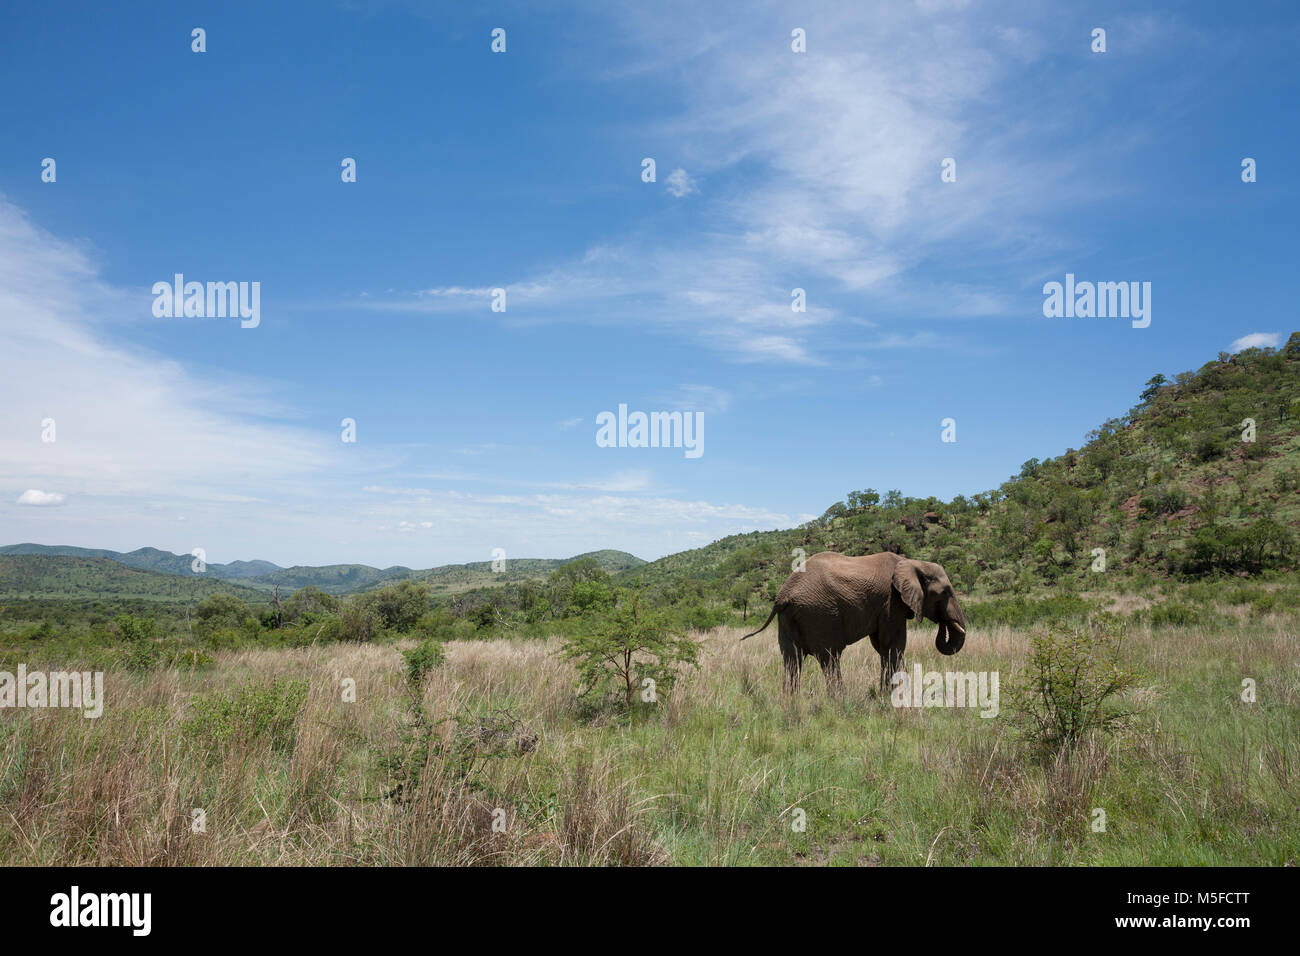 A view of a foraging African elephant in the veld in Pilanesberg National Park, South Africa. - Stock Image